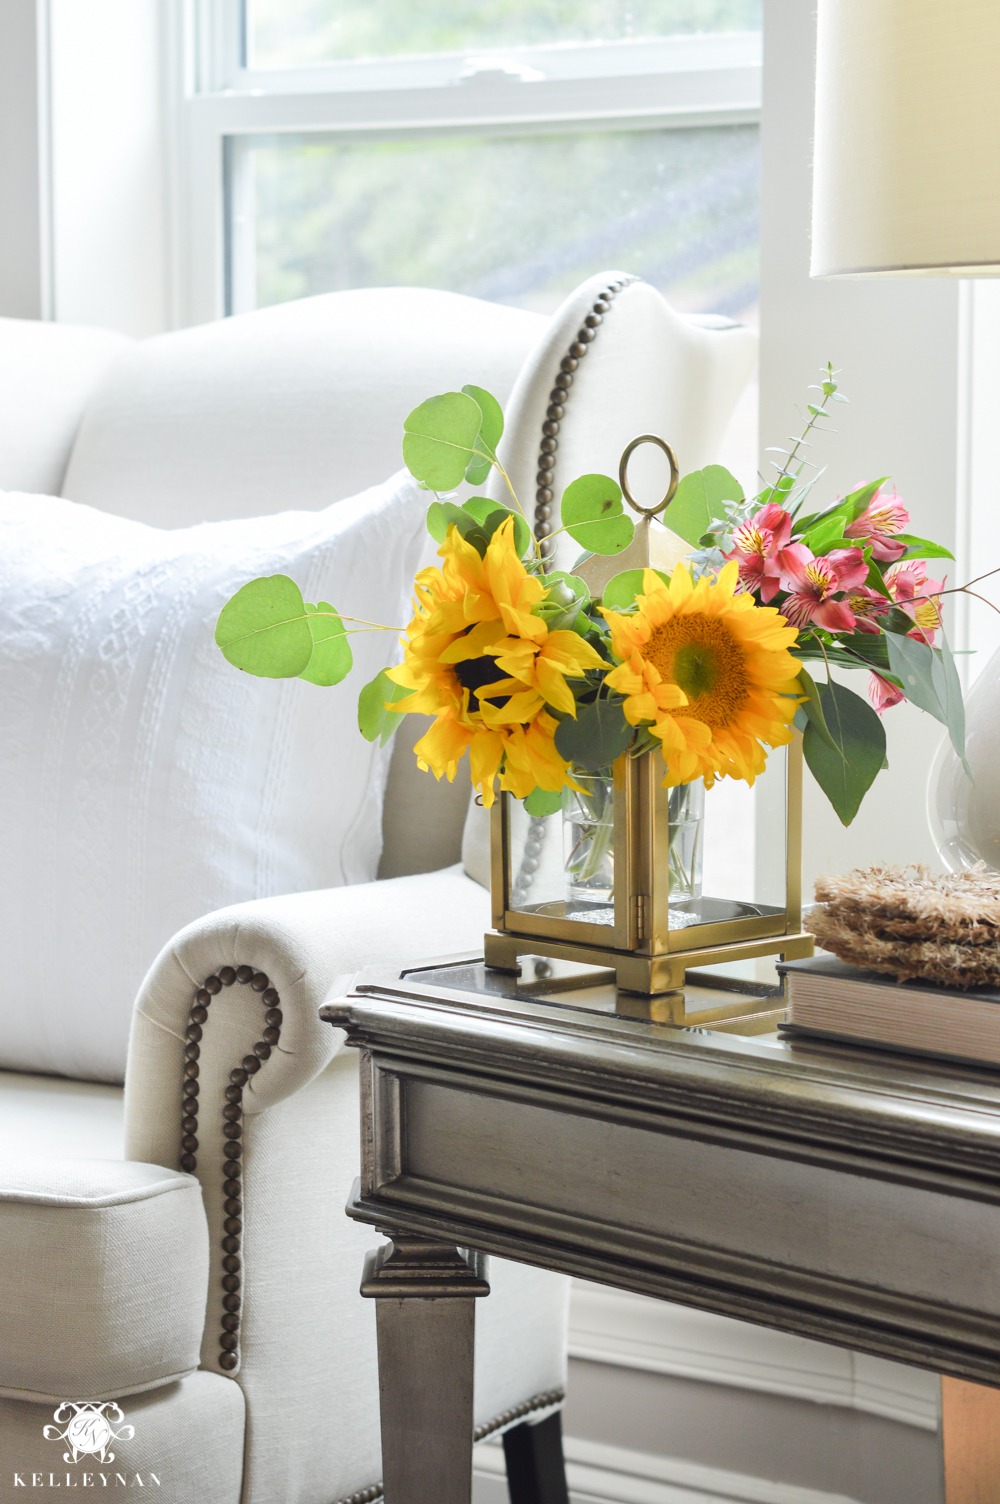 Floral Arrangement Ideas Using Lanterns Living Room Floral Arrangements